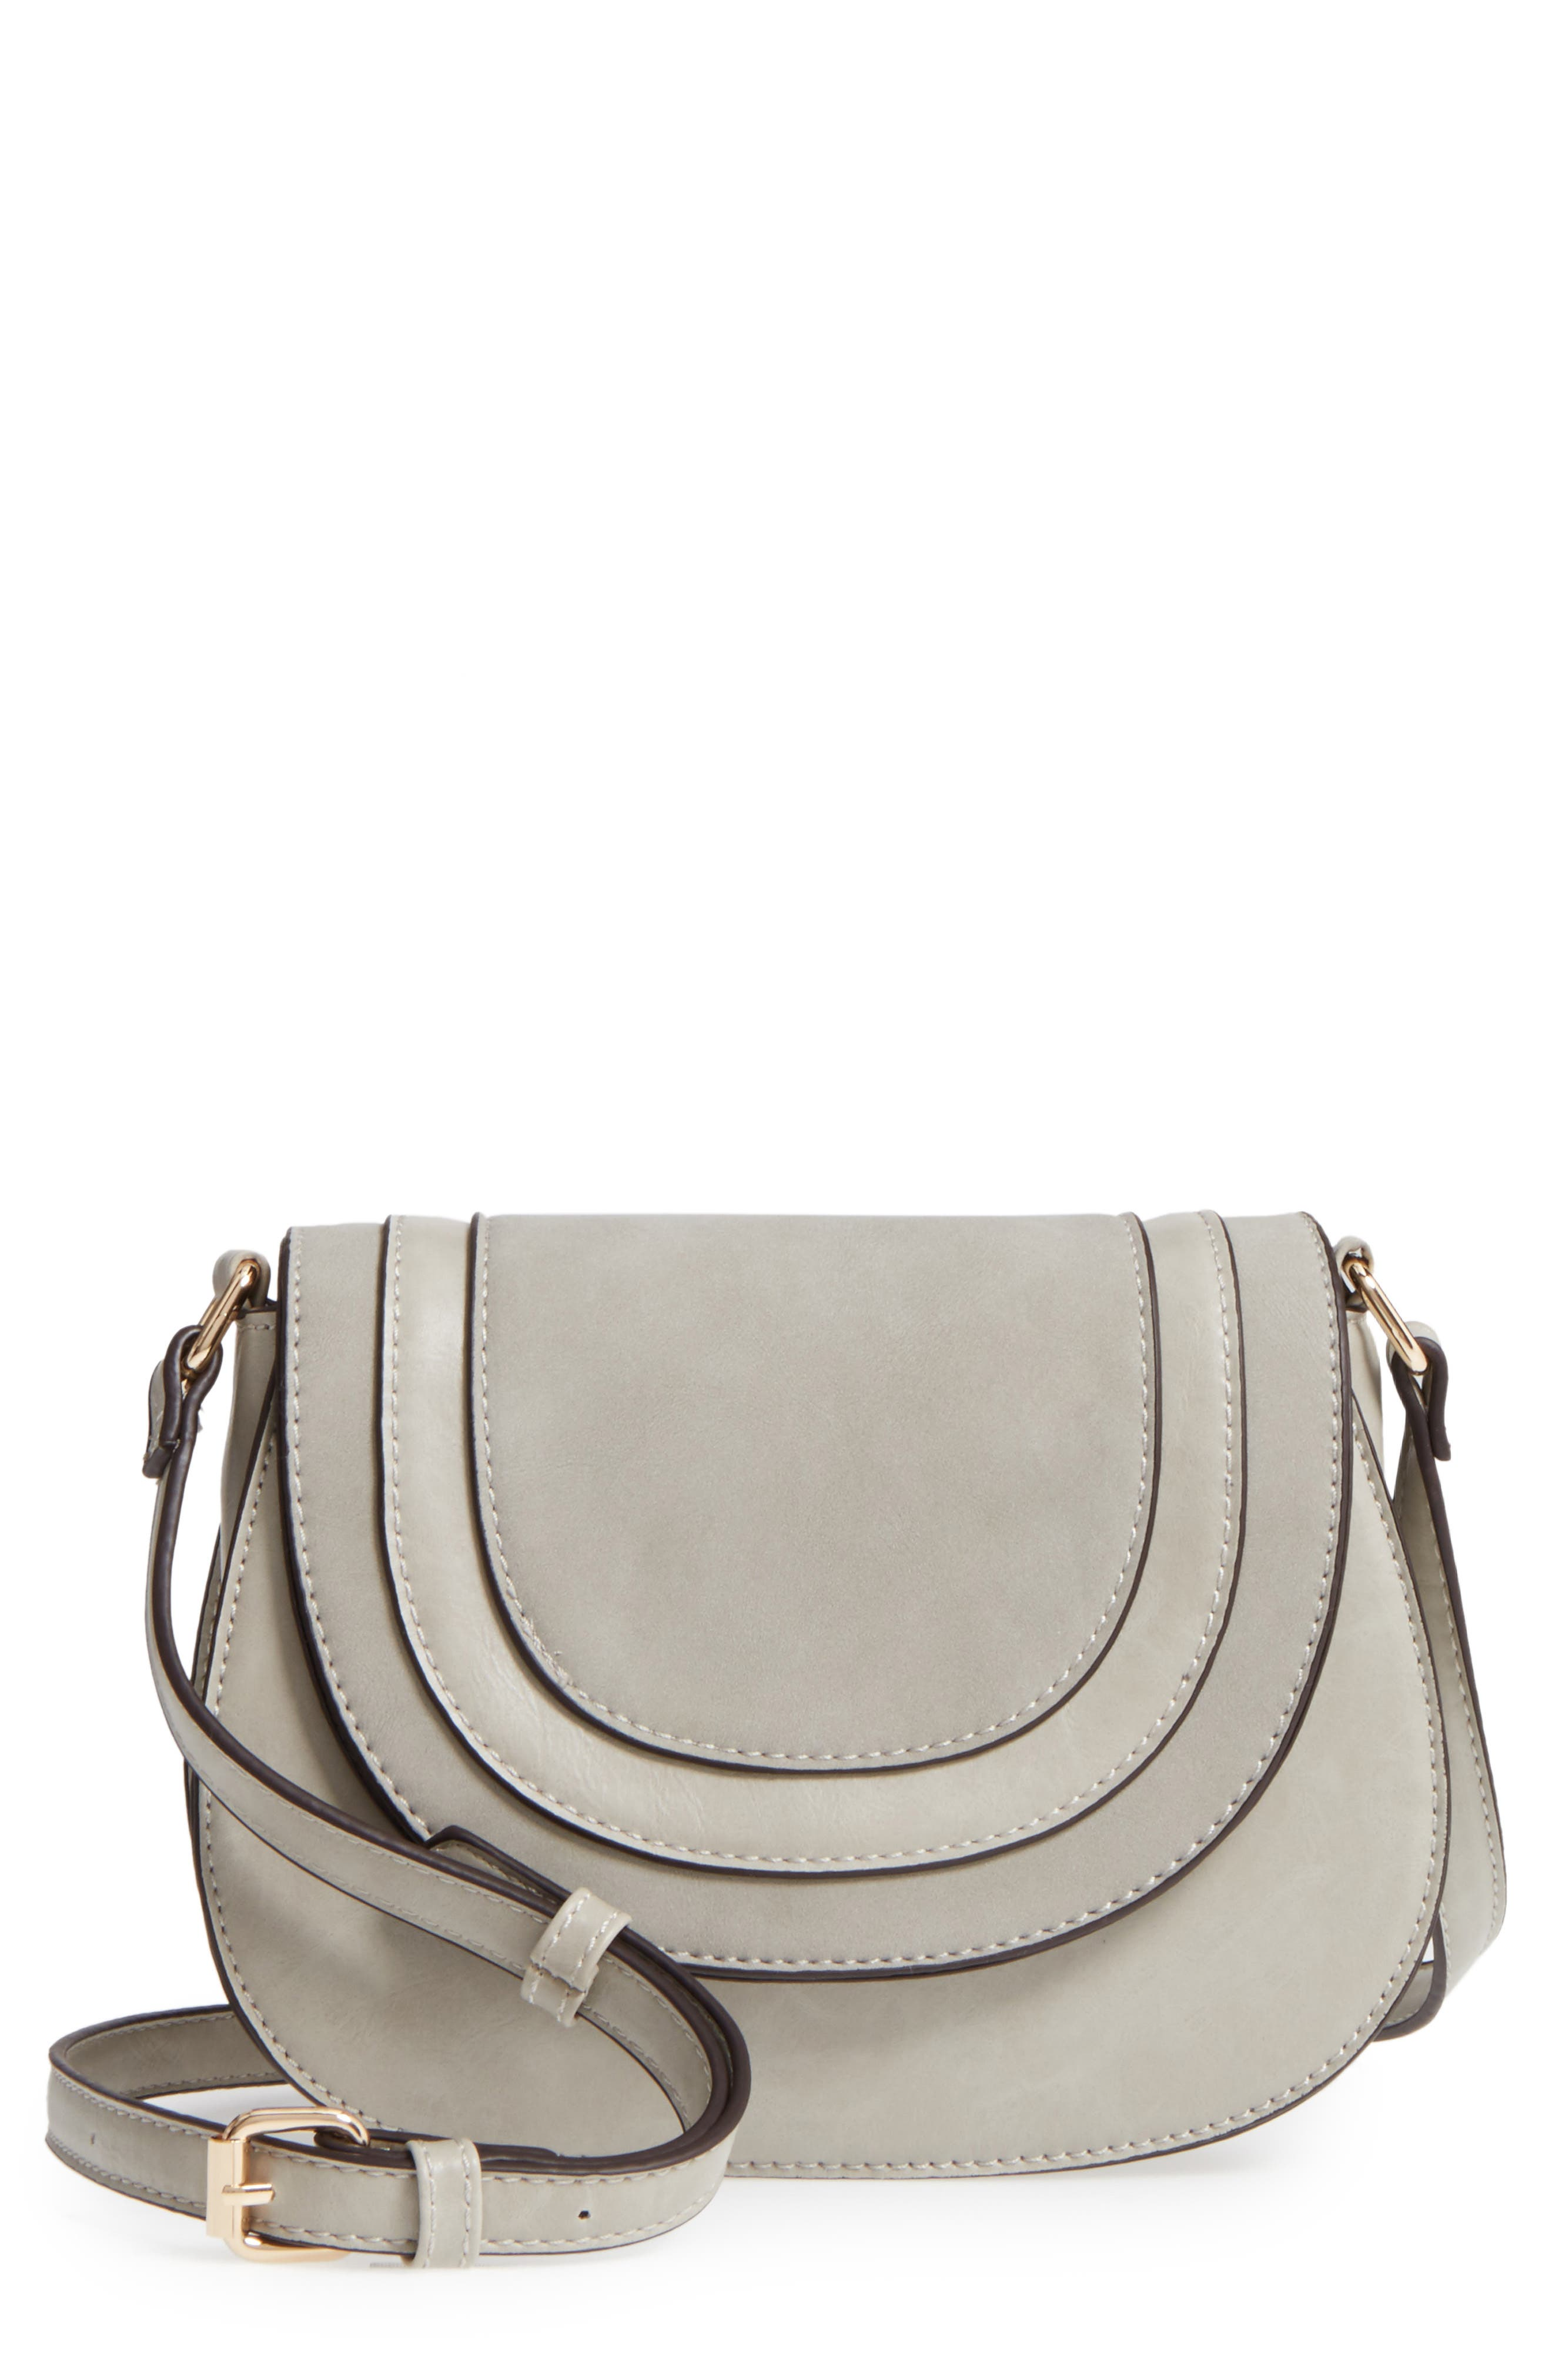 Bryson Faux Leather Crossbody Bag,                             Main thumbnail 1, color,                             025